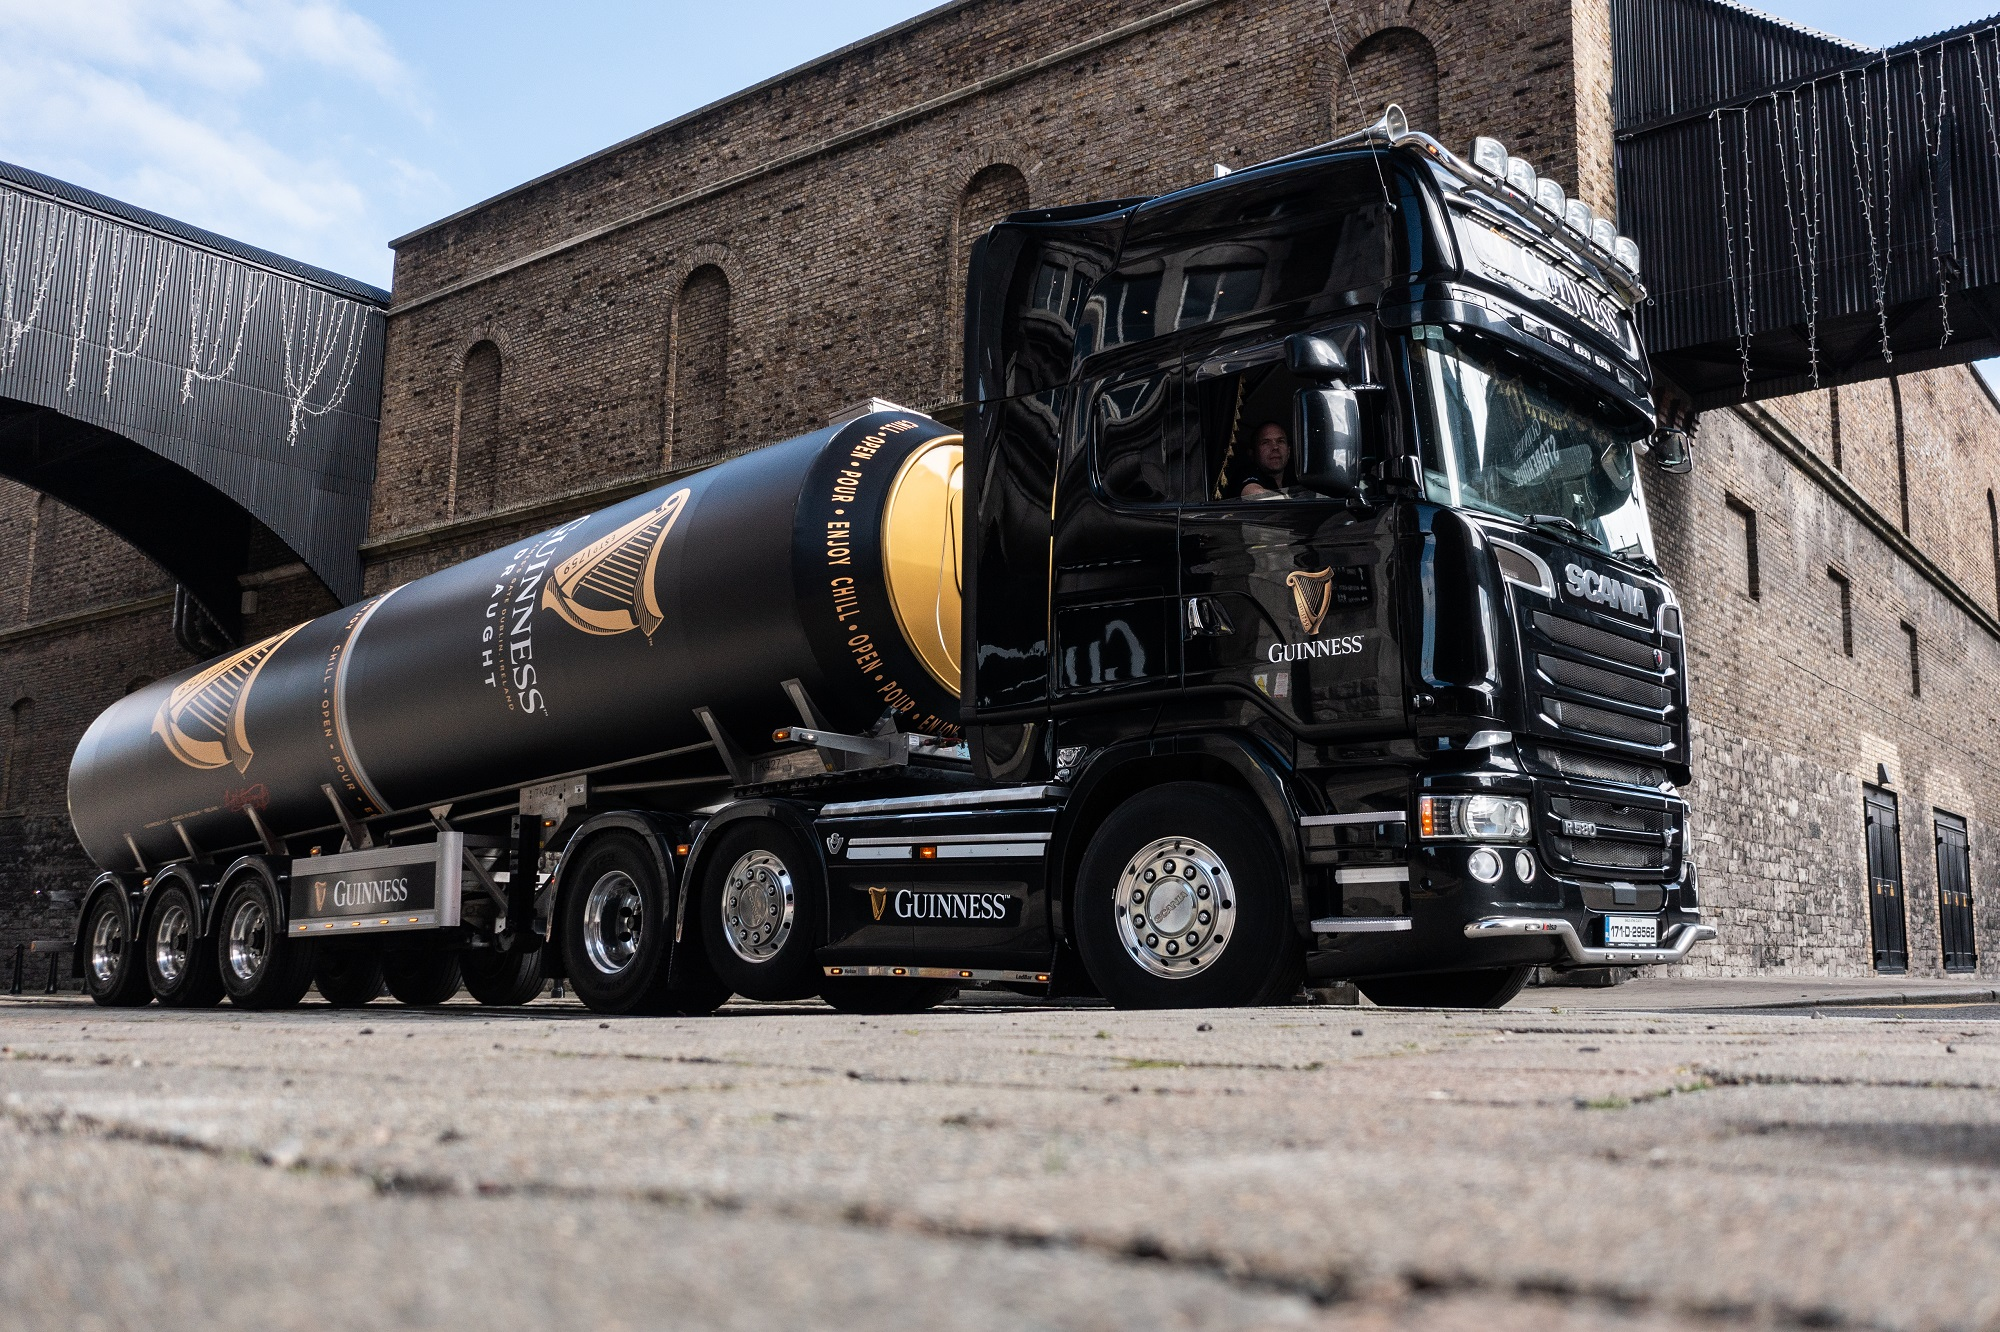 GUINNESS prepares for pub gardens reopening in England on April 12th by delivering 49 tankers of its iconic stout kegging, and deploying quality control experts to 50,000 venues across the country.